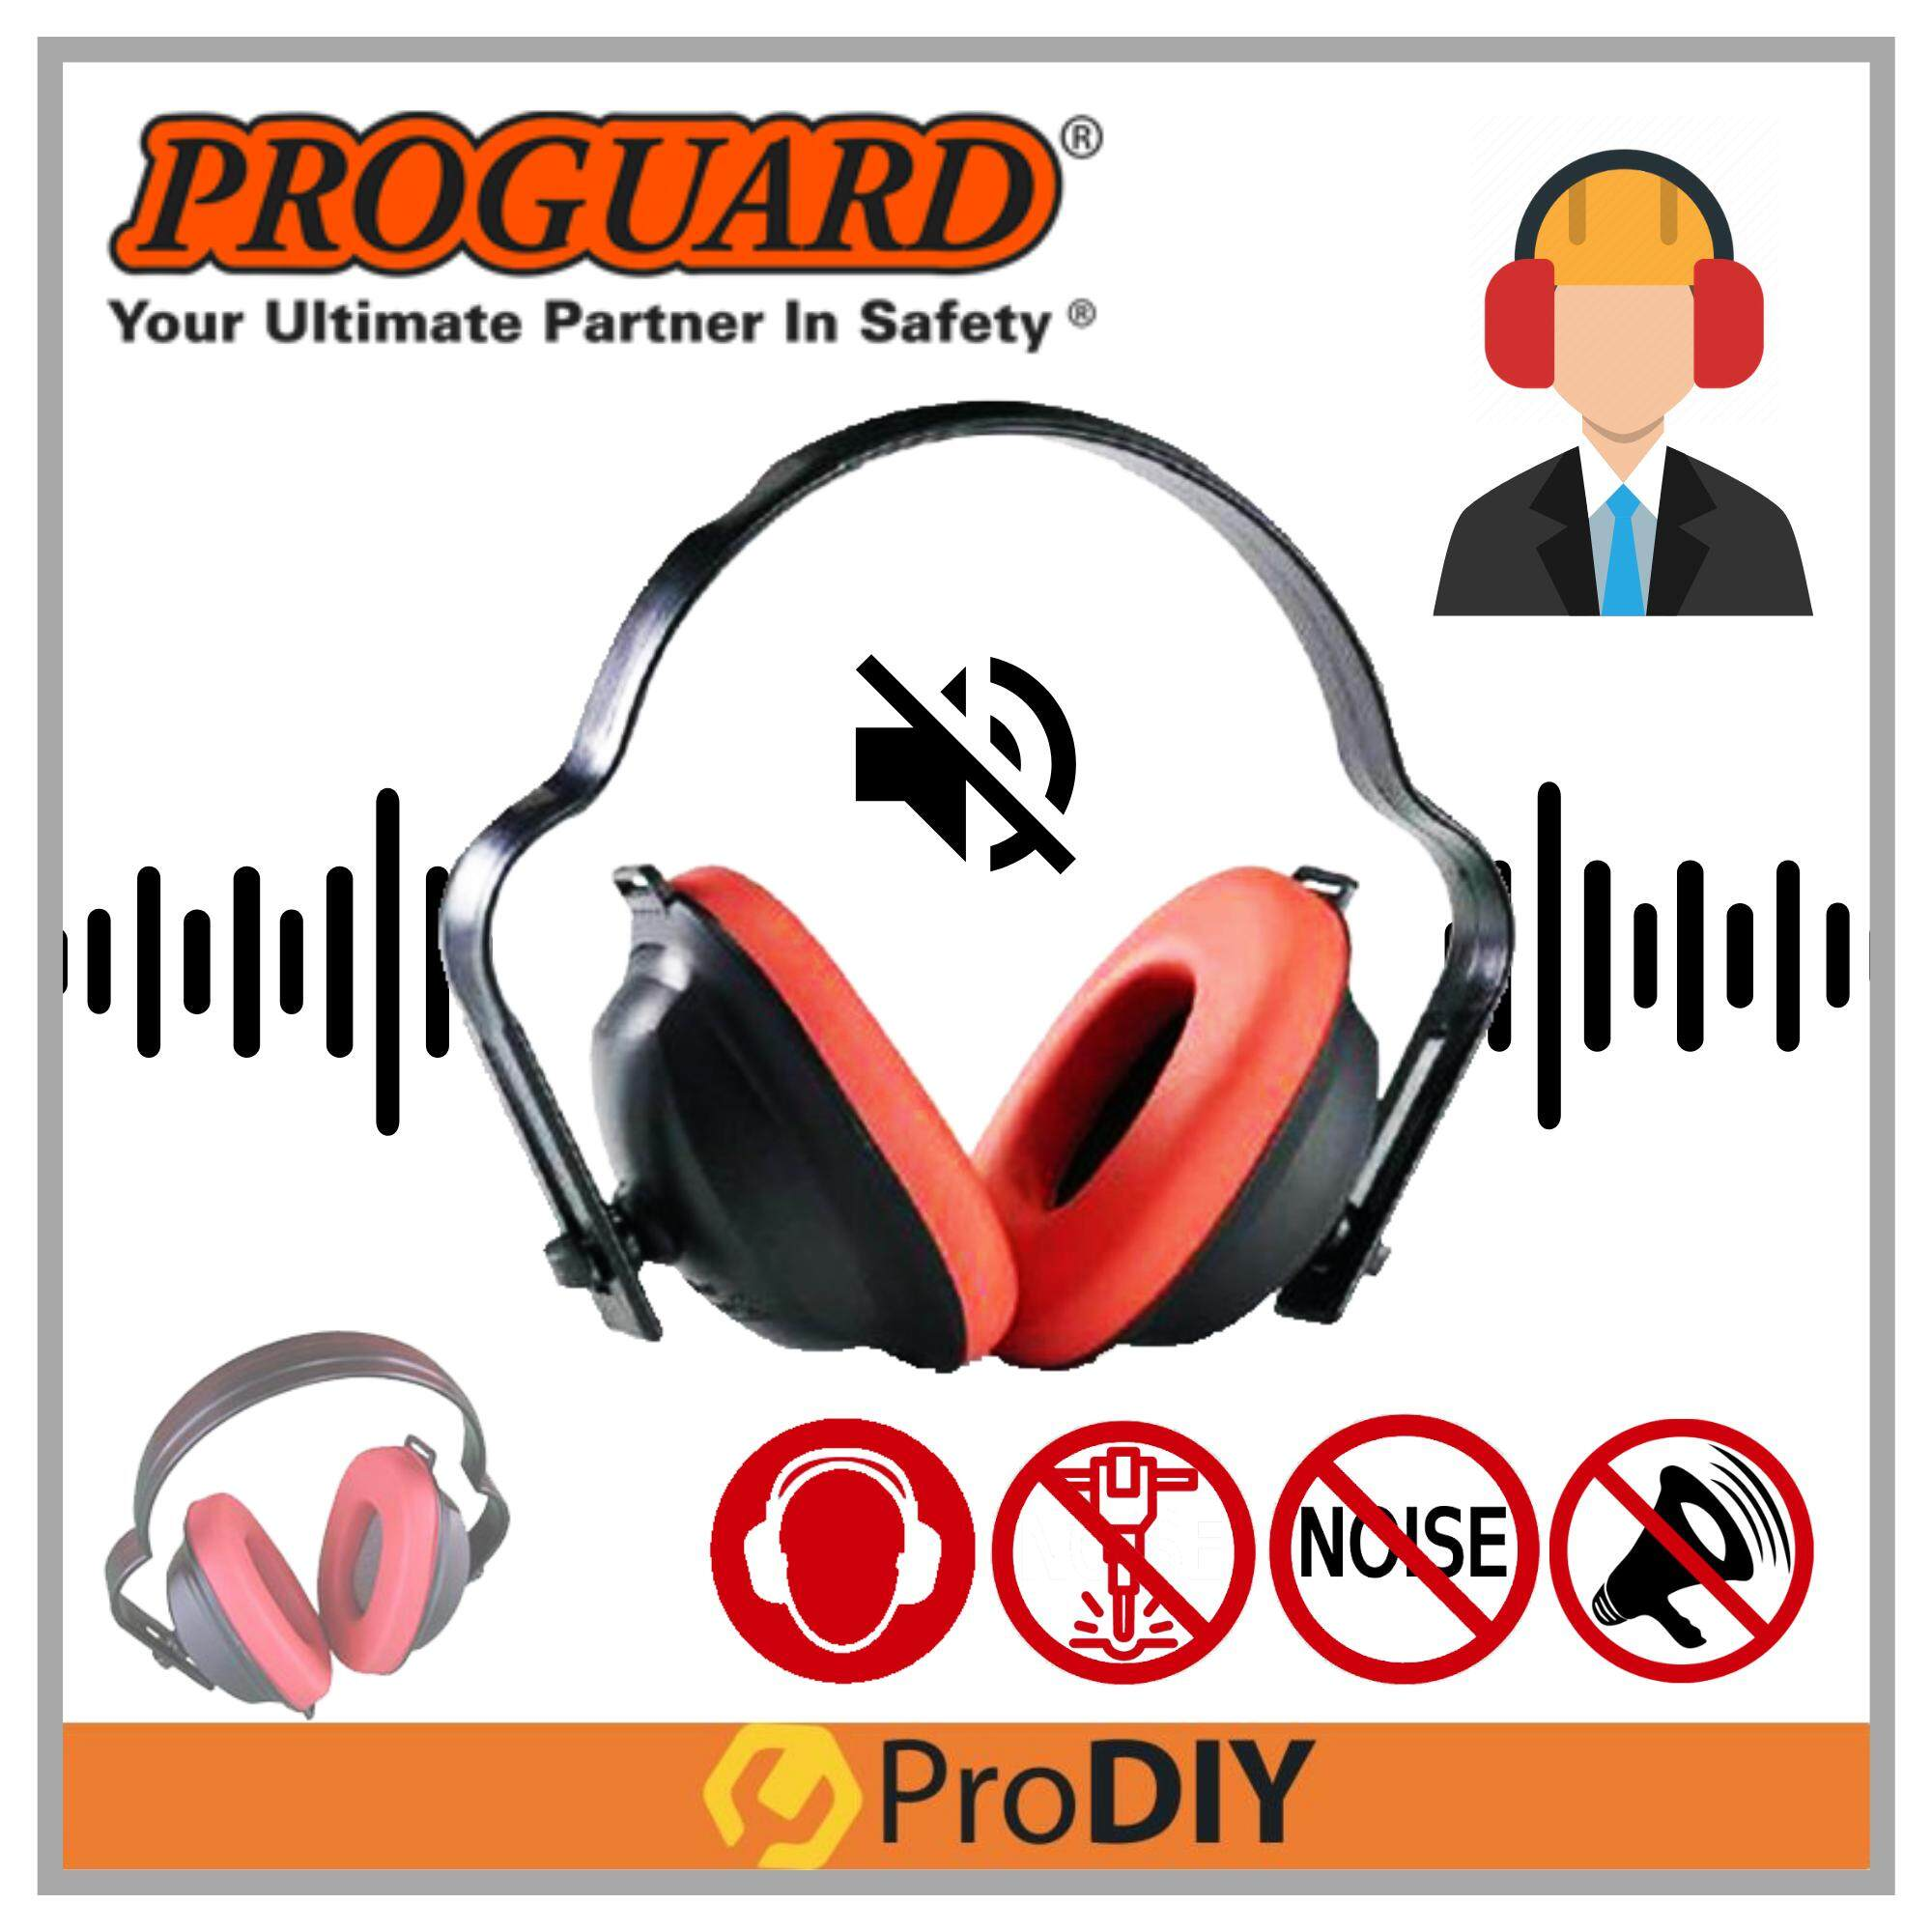 PROGUARD ECO EAR MUFF Ear Protection Ear Cover Noise Reduction Hearing Protection Safety Ear Muff